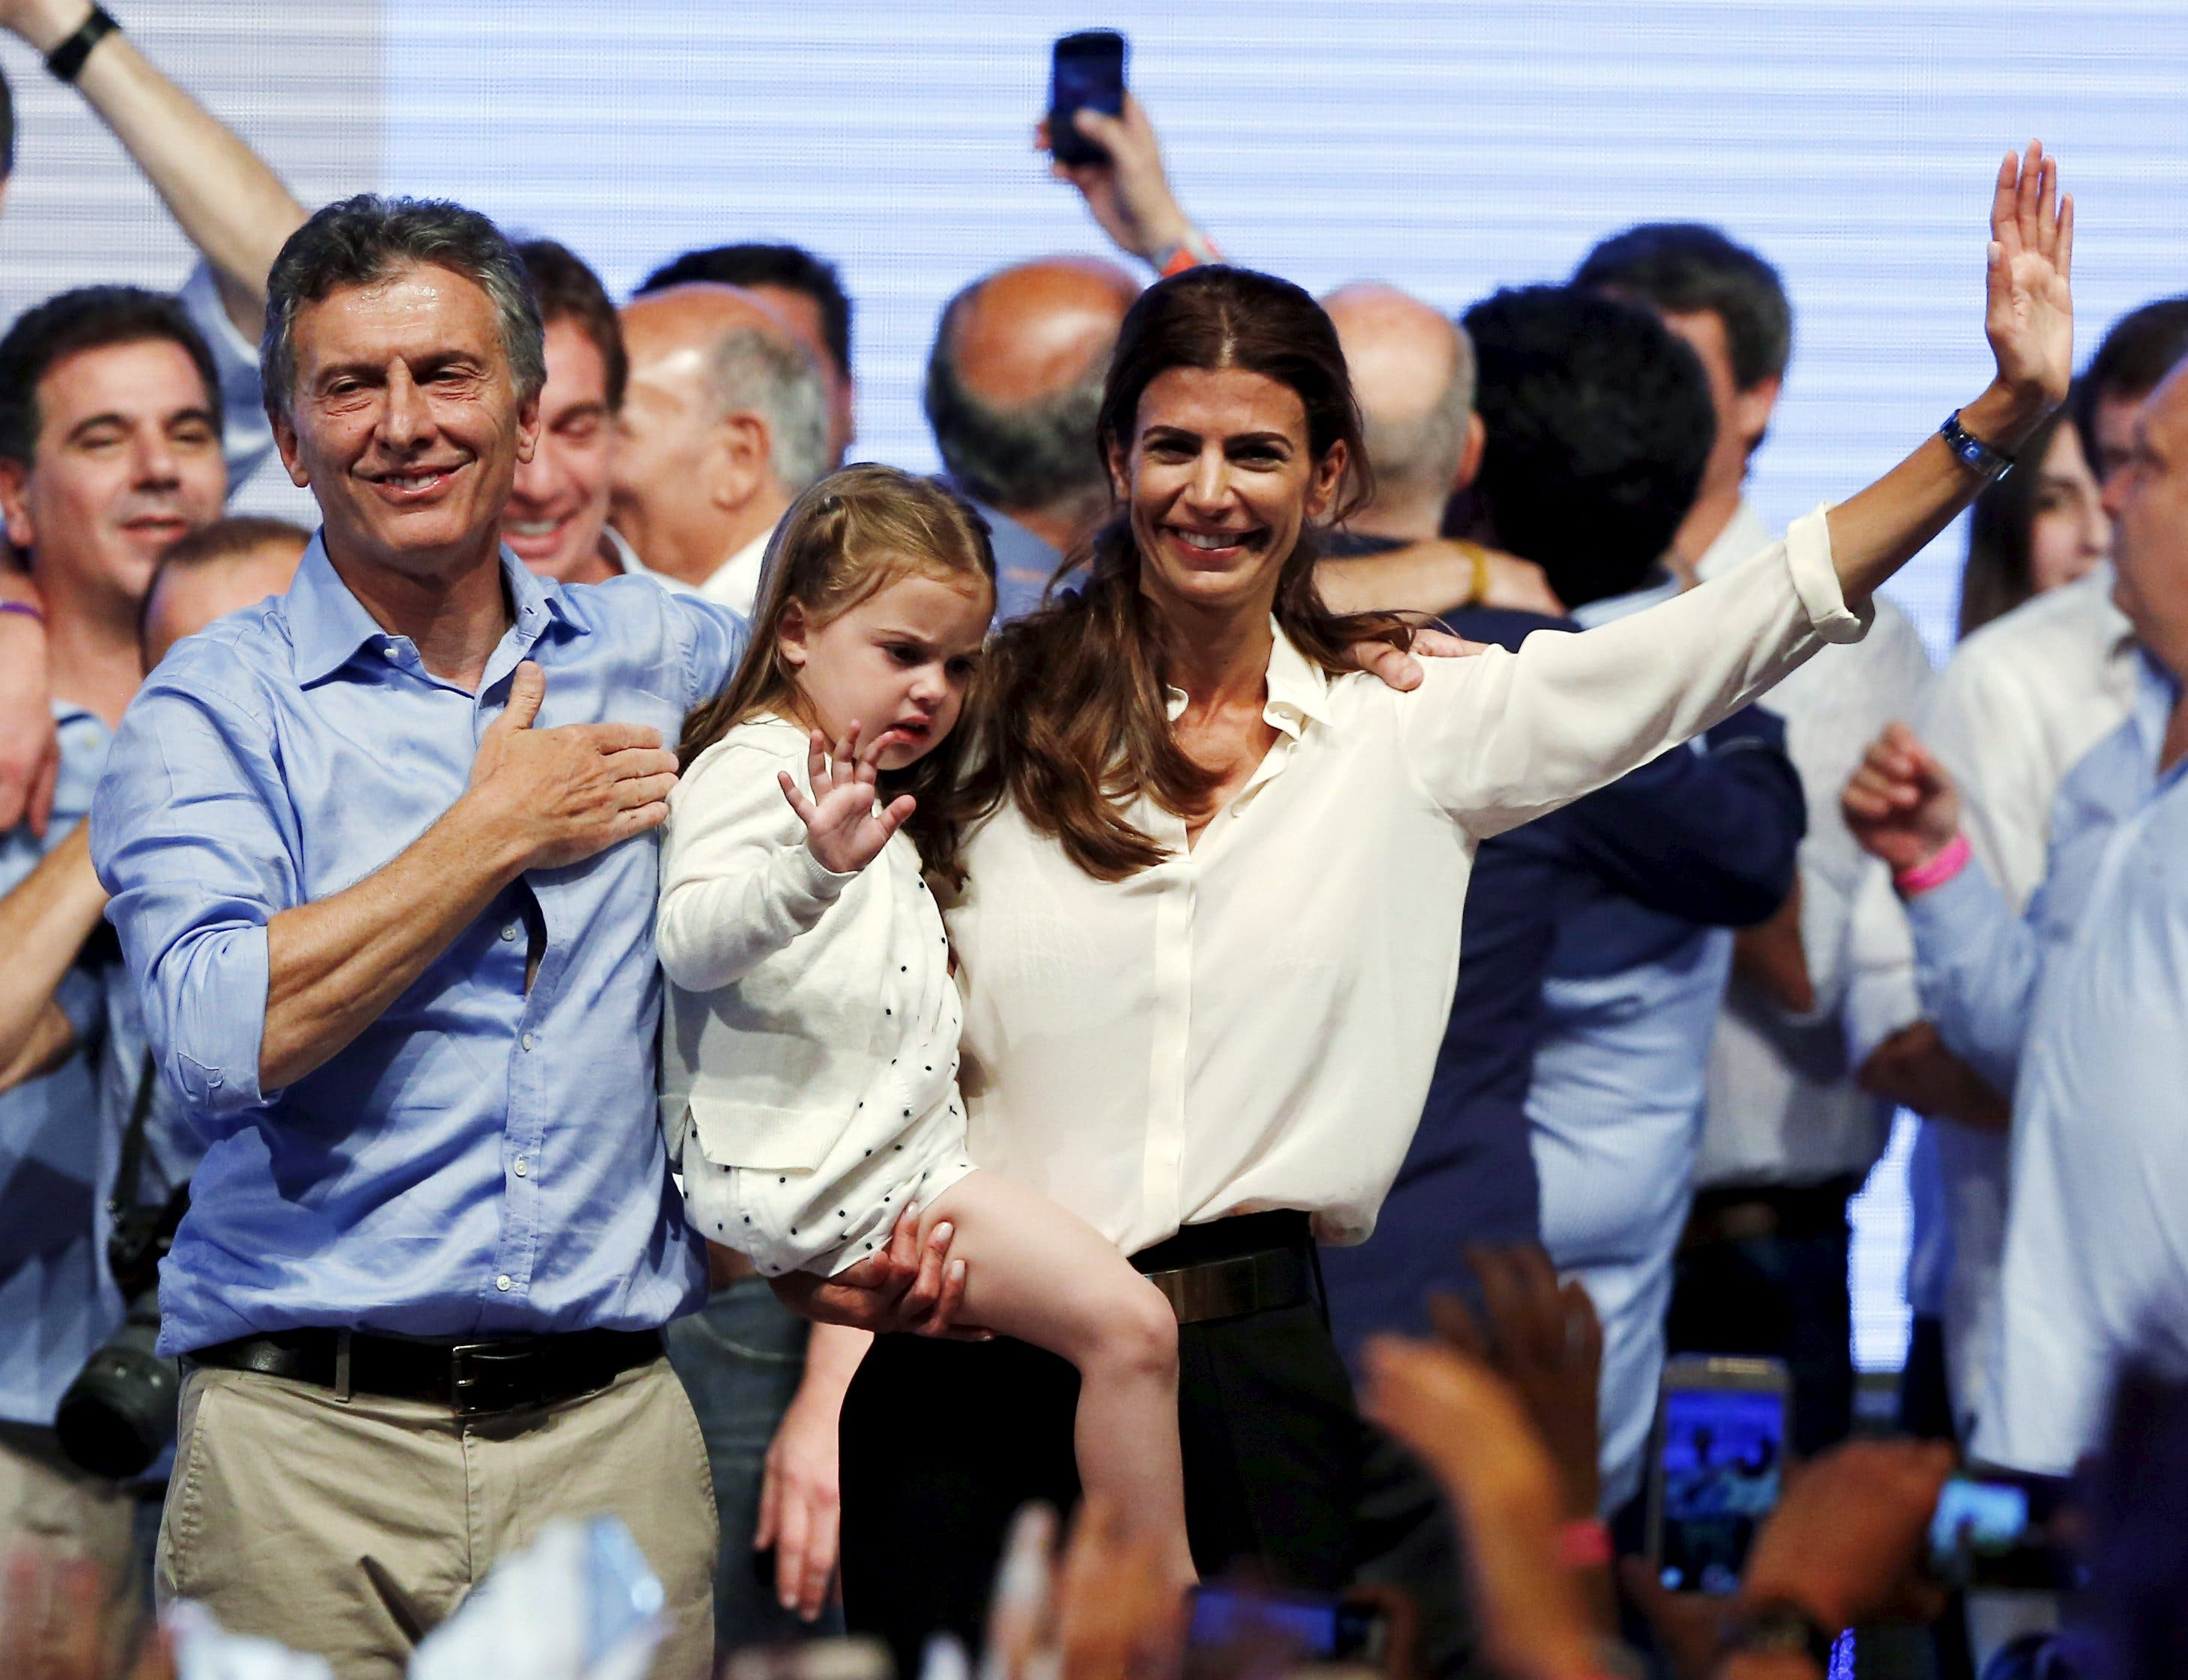 Mauricio Macri, presidential candidate of the Cambiemos (Let's Change) coalition, his wife Juliana Awada and their daughter Antonia gesture to their supporters after the presidential election in Buenos Aires, Argentina, November 22, 2015. Conservative opposition candidate Macri comfortably won Argentina's presidential election on Sunday after promising business-friendly reforms to spur investment in the struggling economy. REUTERS/Ivan Alvarado TPX IMAGES OF THE DAY